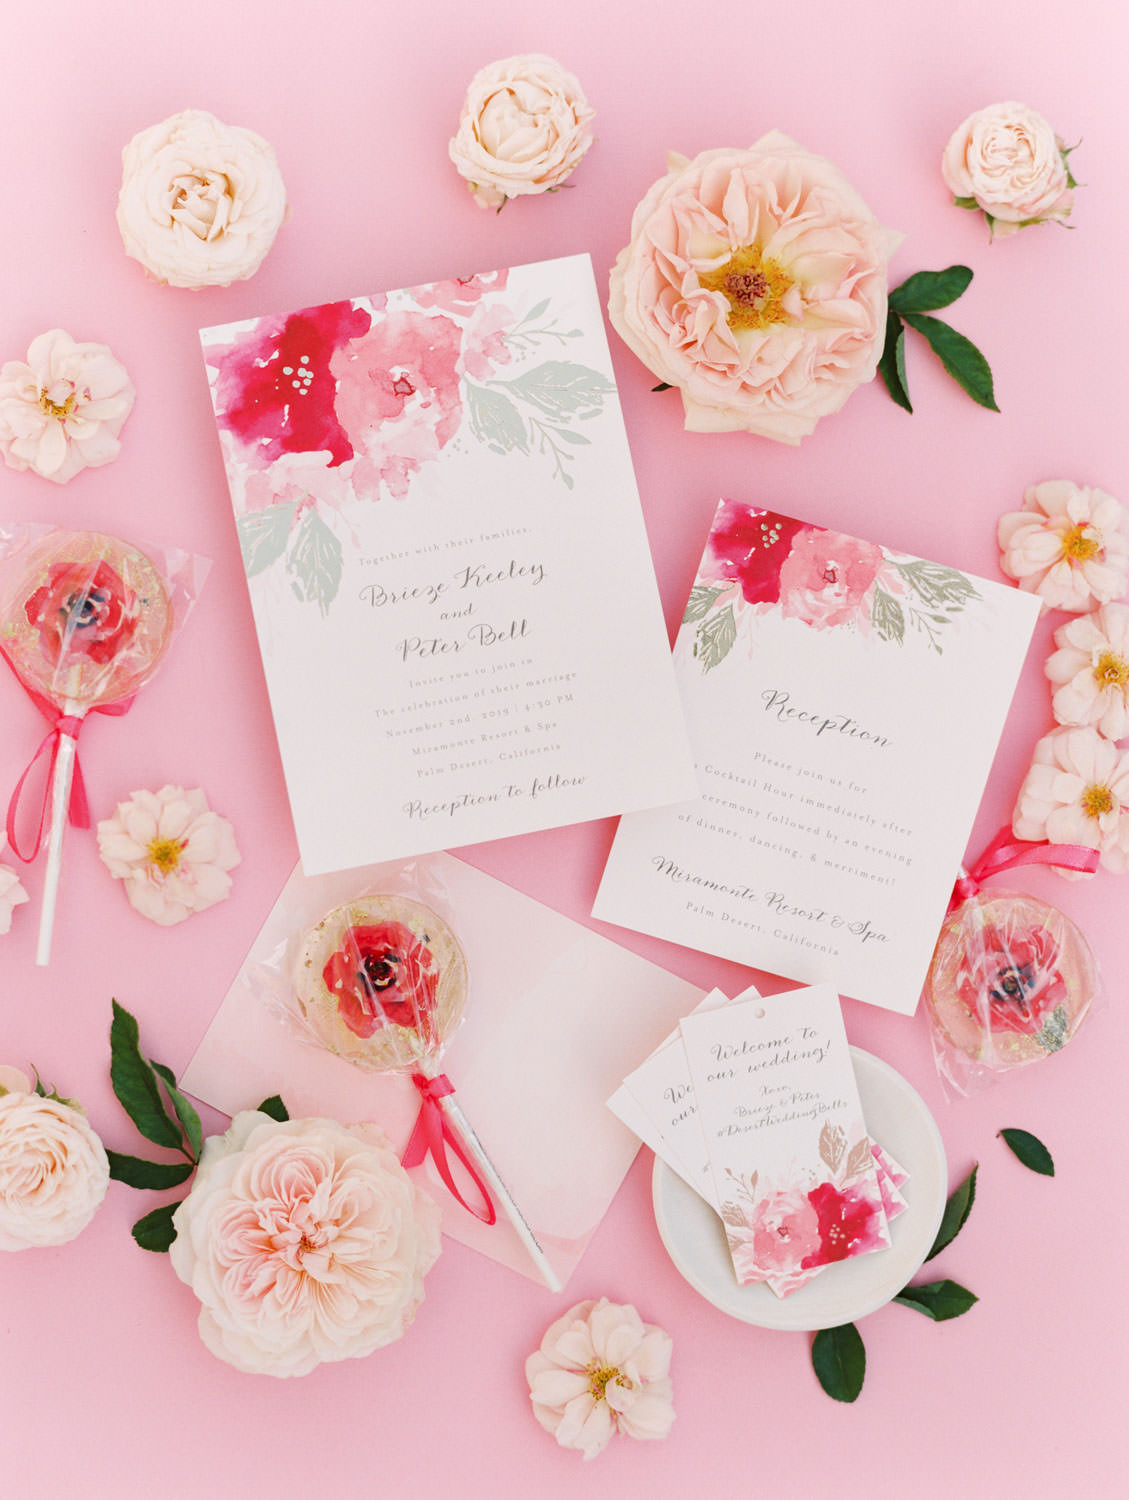 Minted pink floral wedding invitation suite with gold foil press. Custom pink floral lollipop (champagne flavor) styled with pink flowers. Film photography by Cavin Elizabeth.